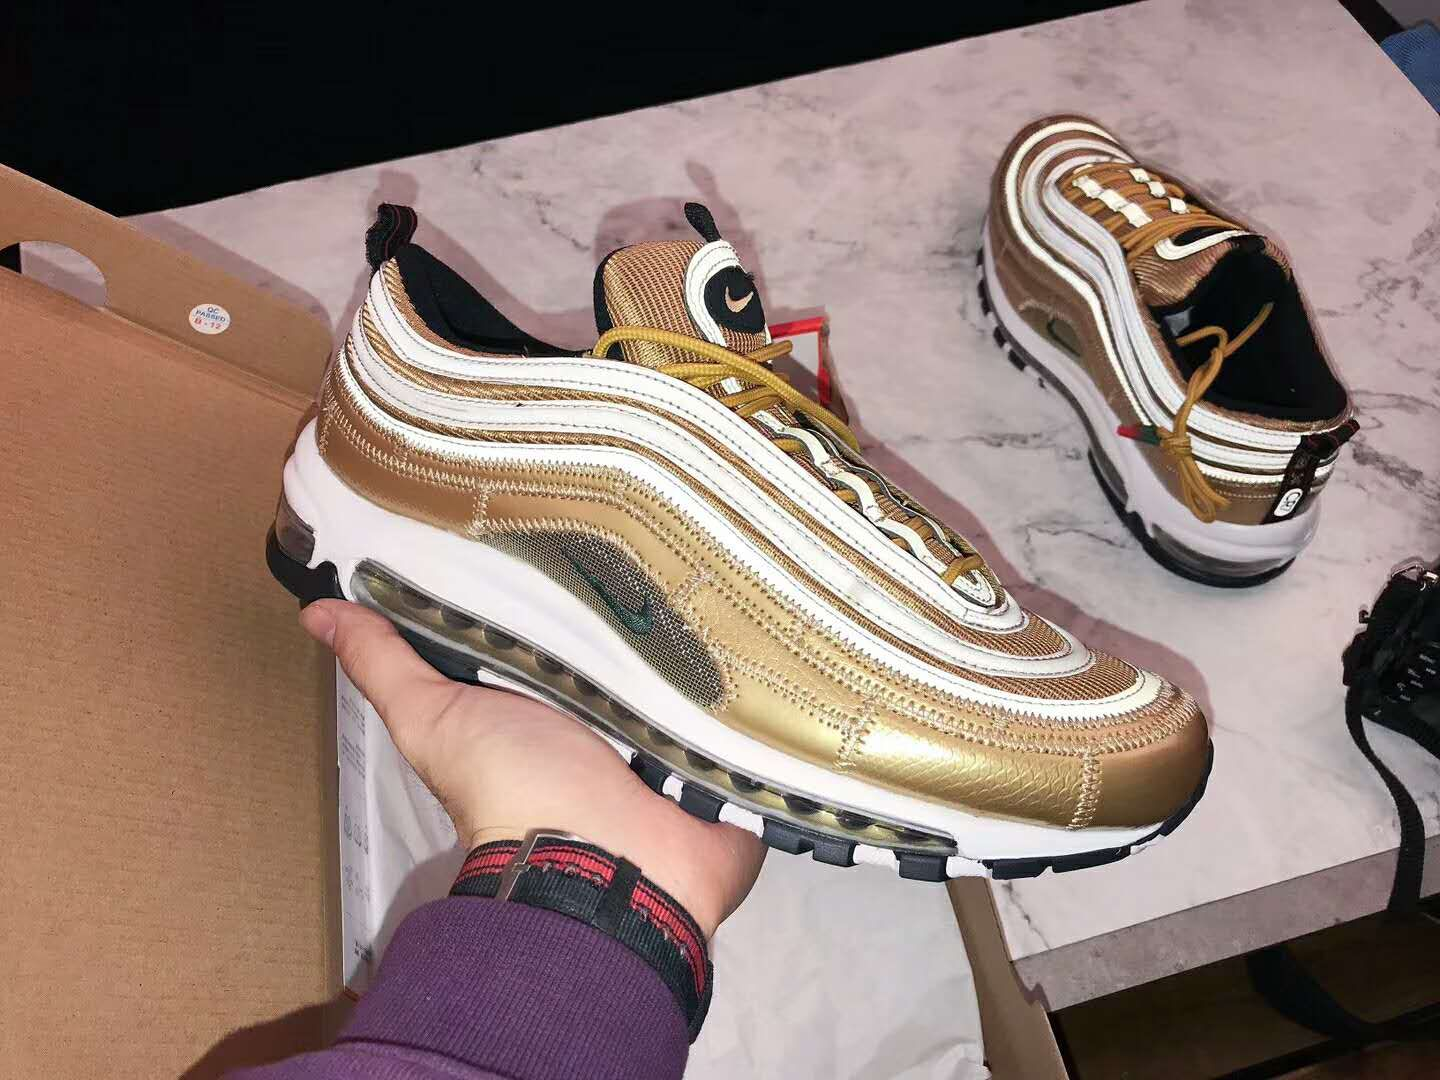 Nike Air Max 97 CR7 Cristiano Ronaldo Gold Patchwork AQ0655